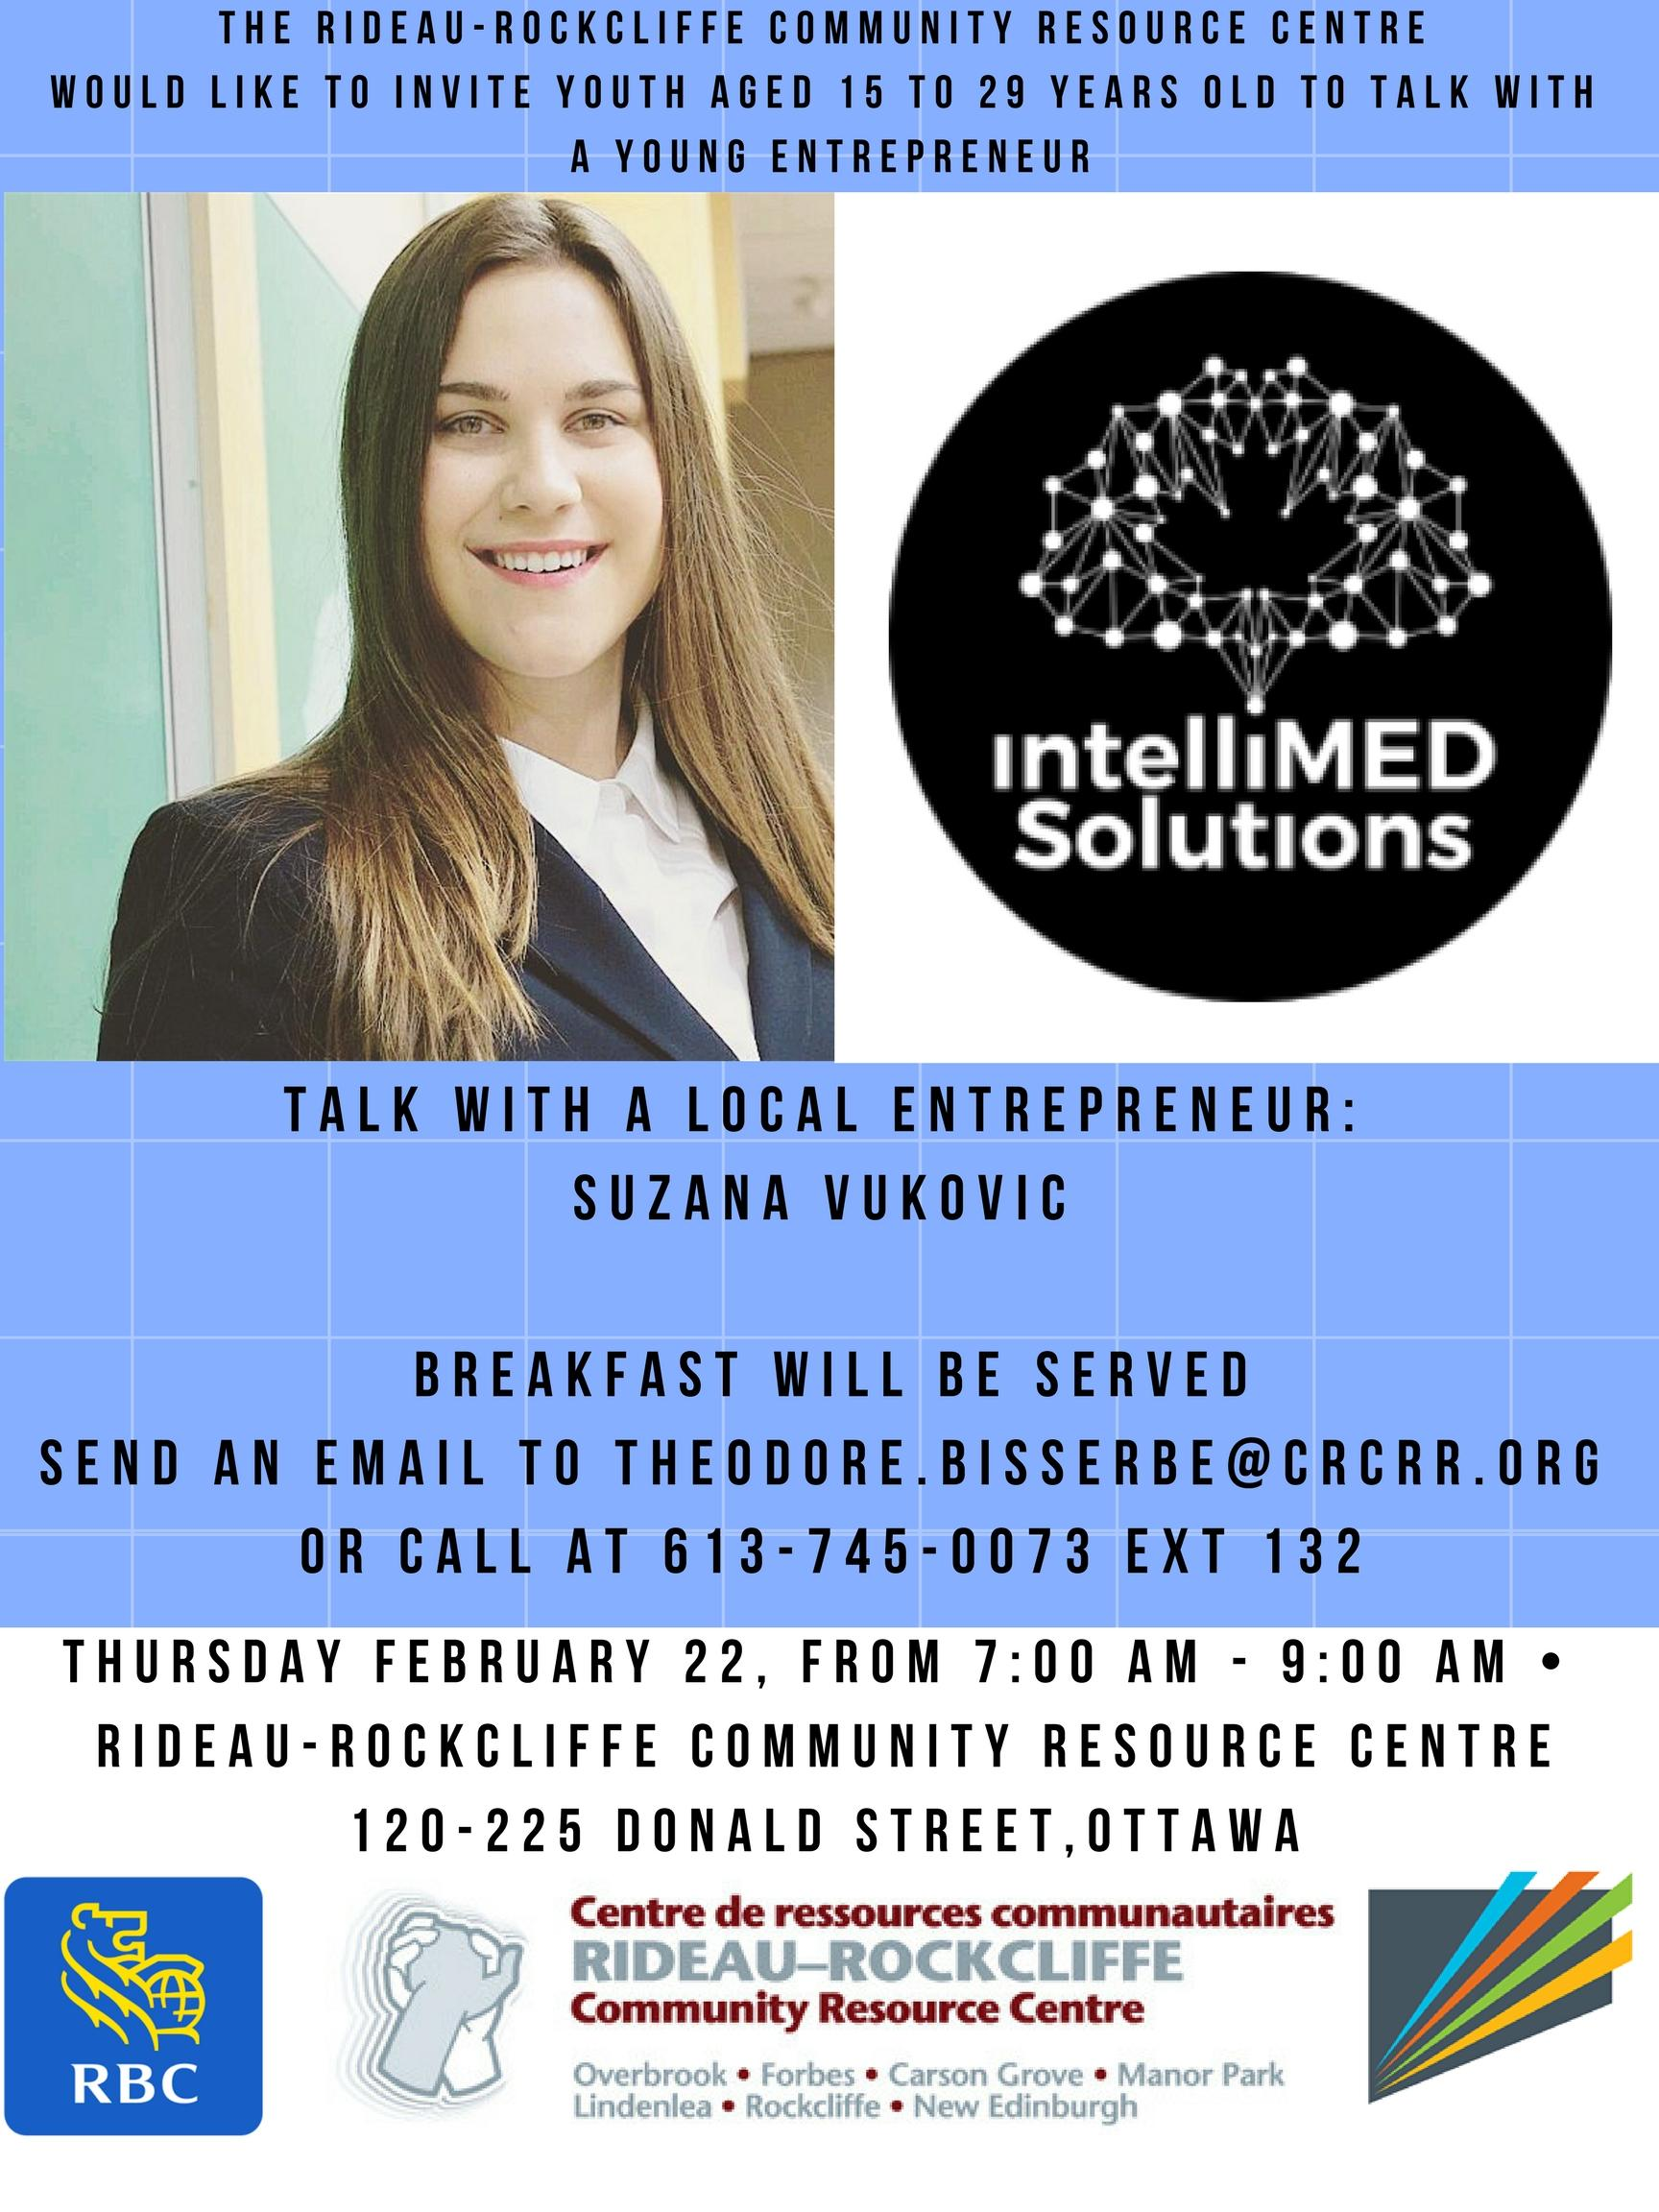 Networking event with a local entrepreneur in